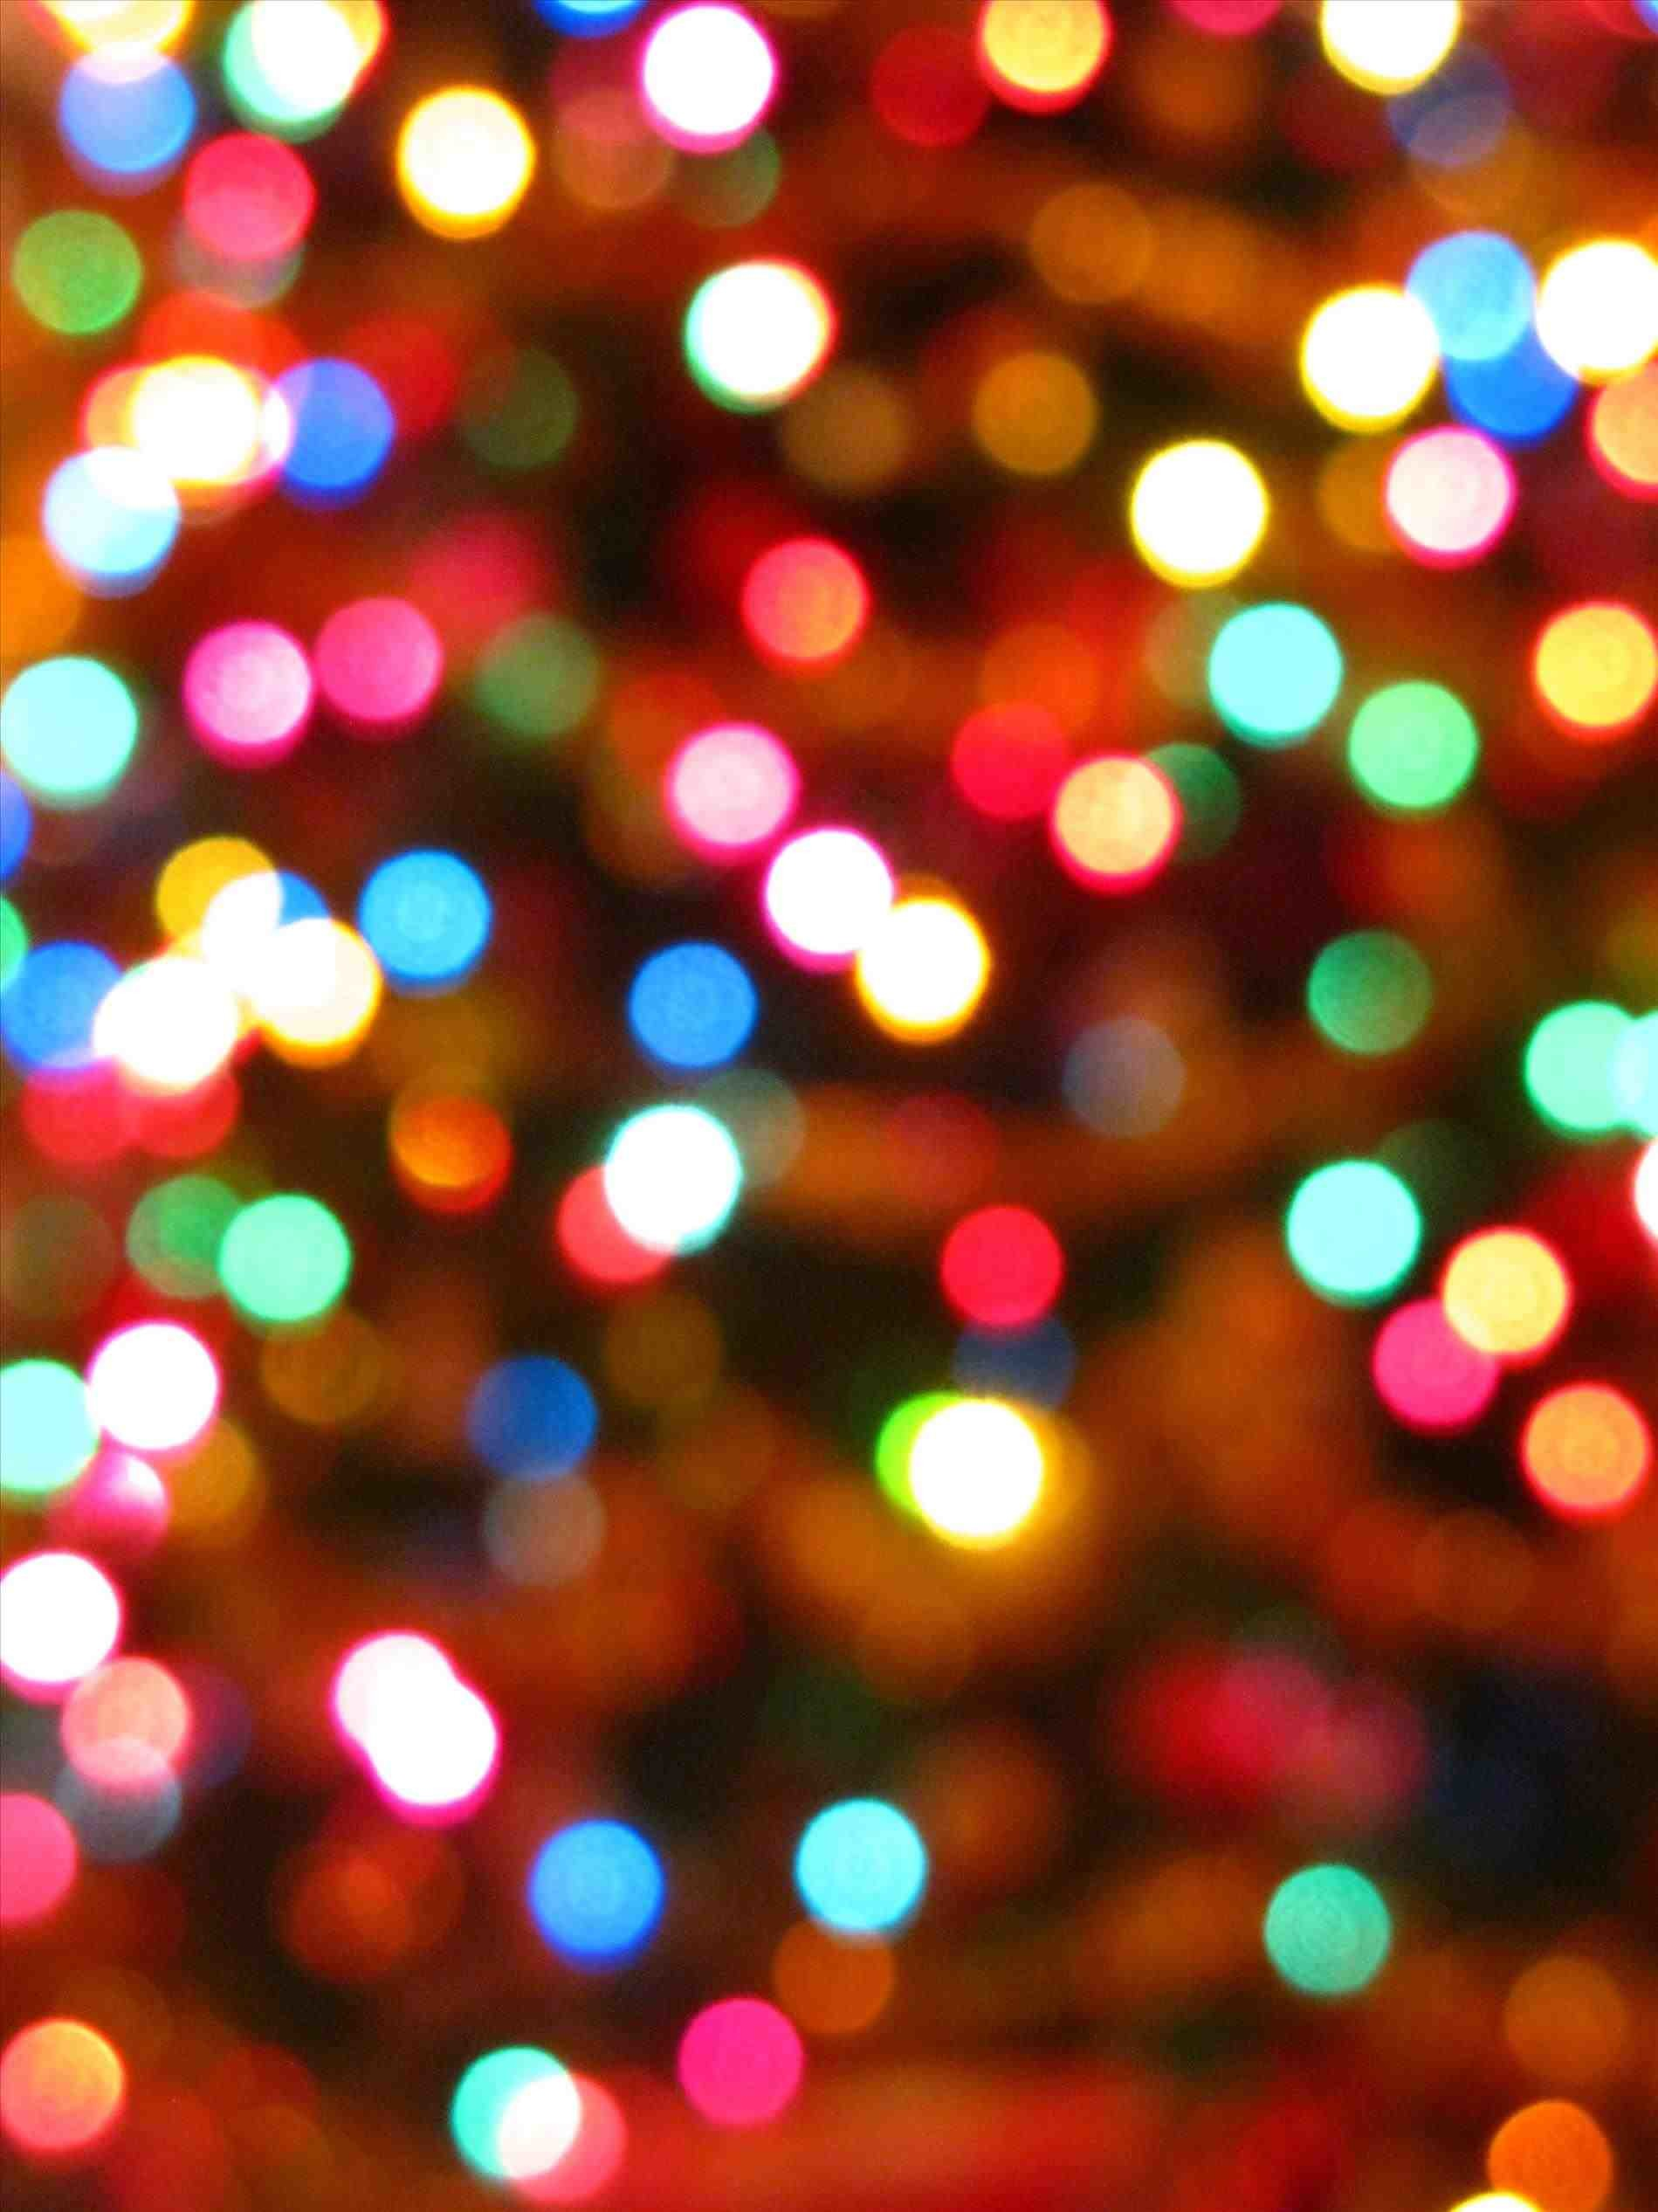 Green Yellow Red Christmas Day 882898 Hd Wallpaper